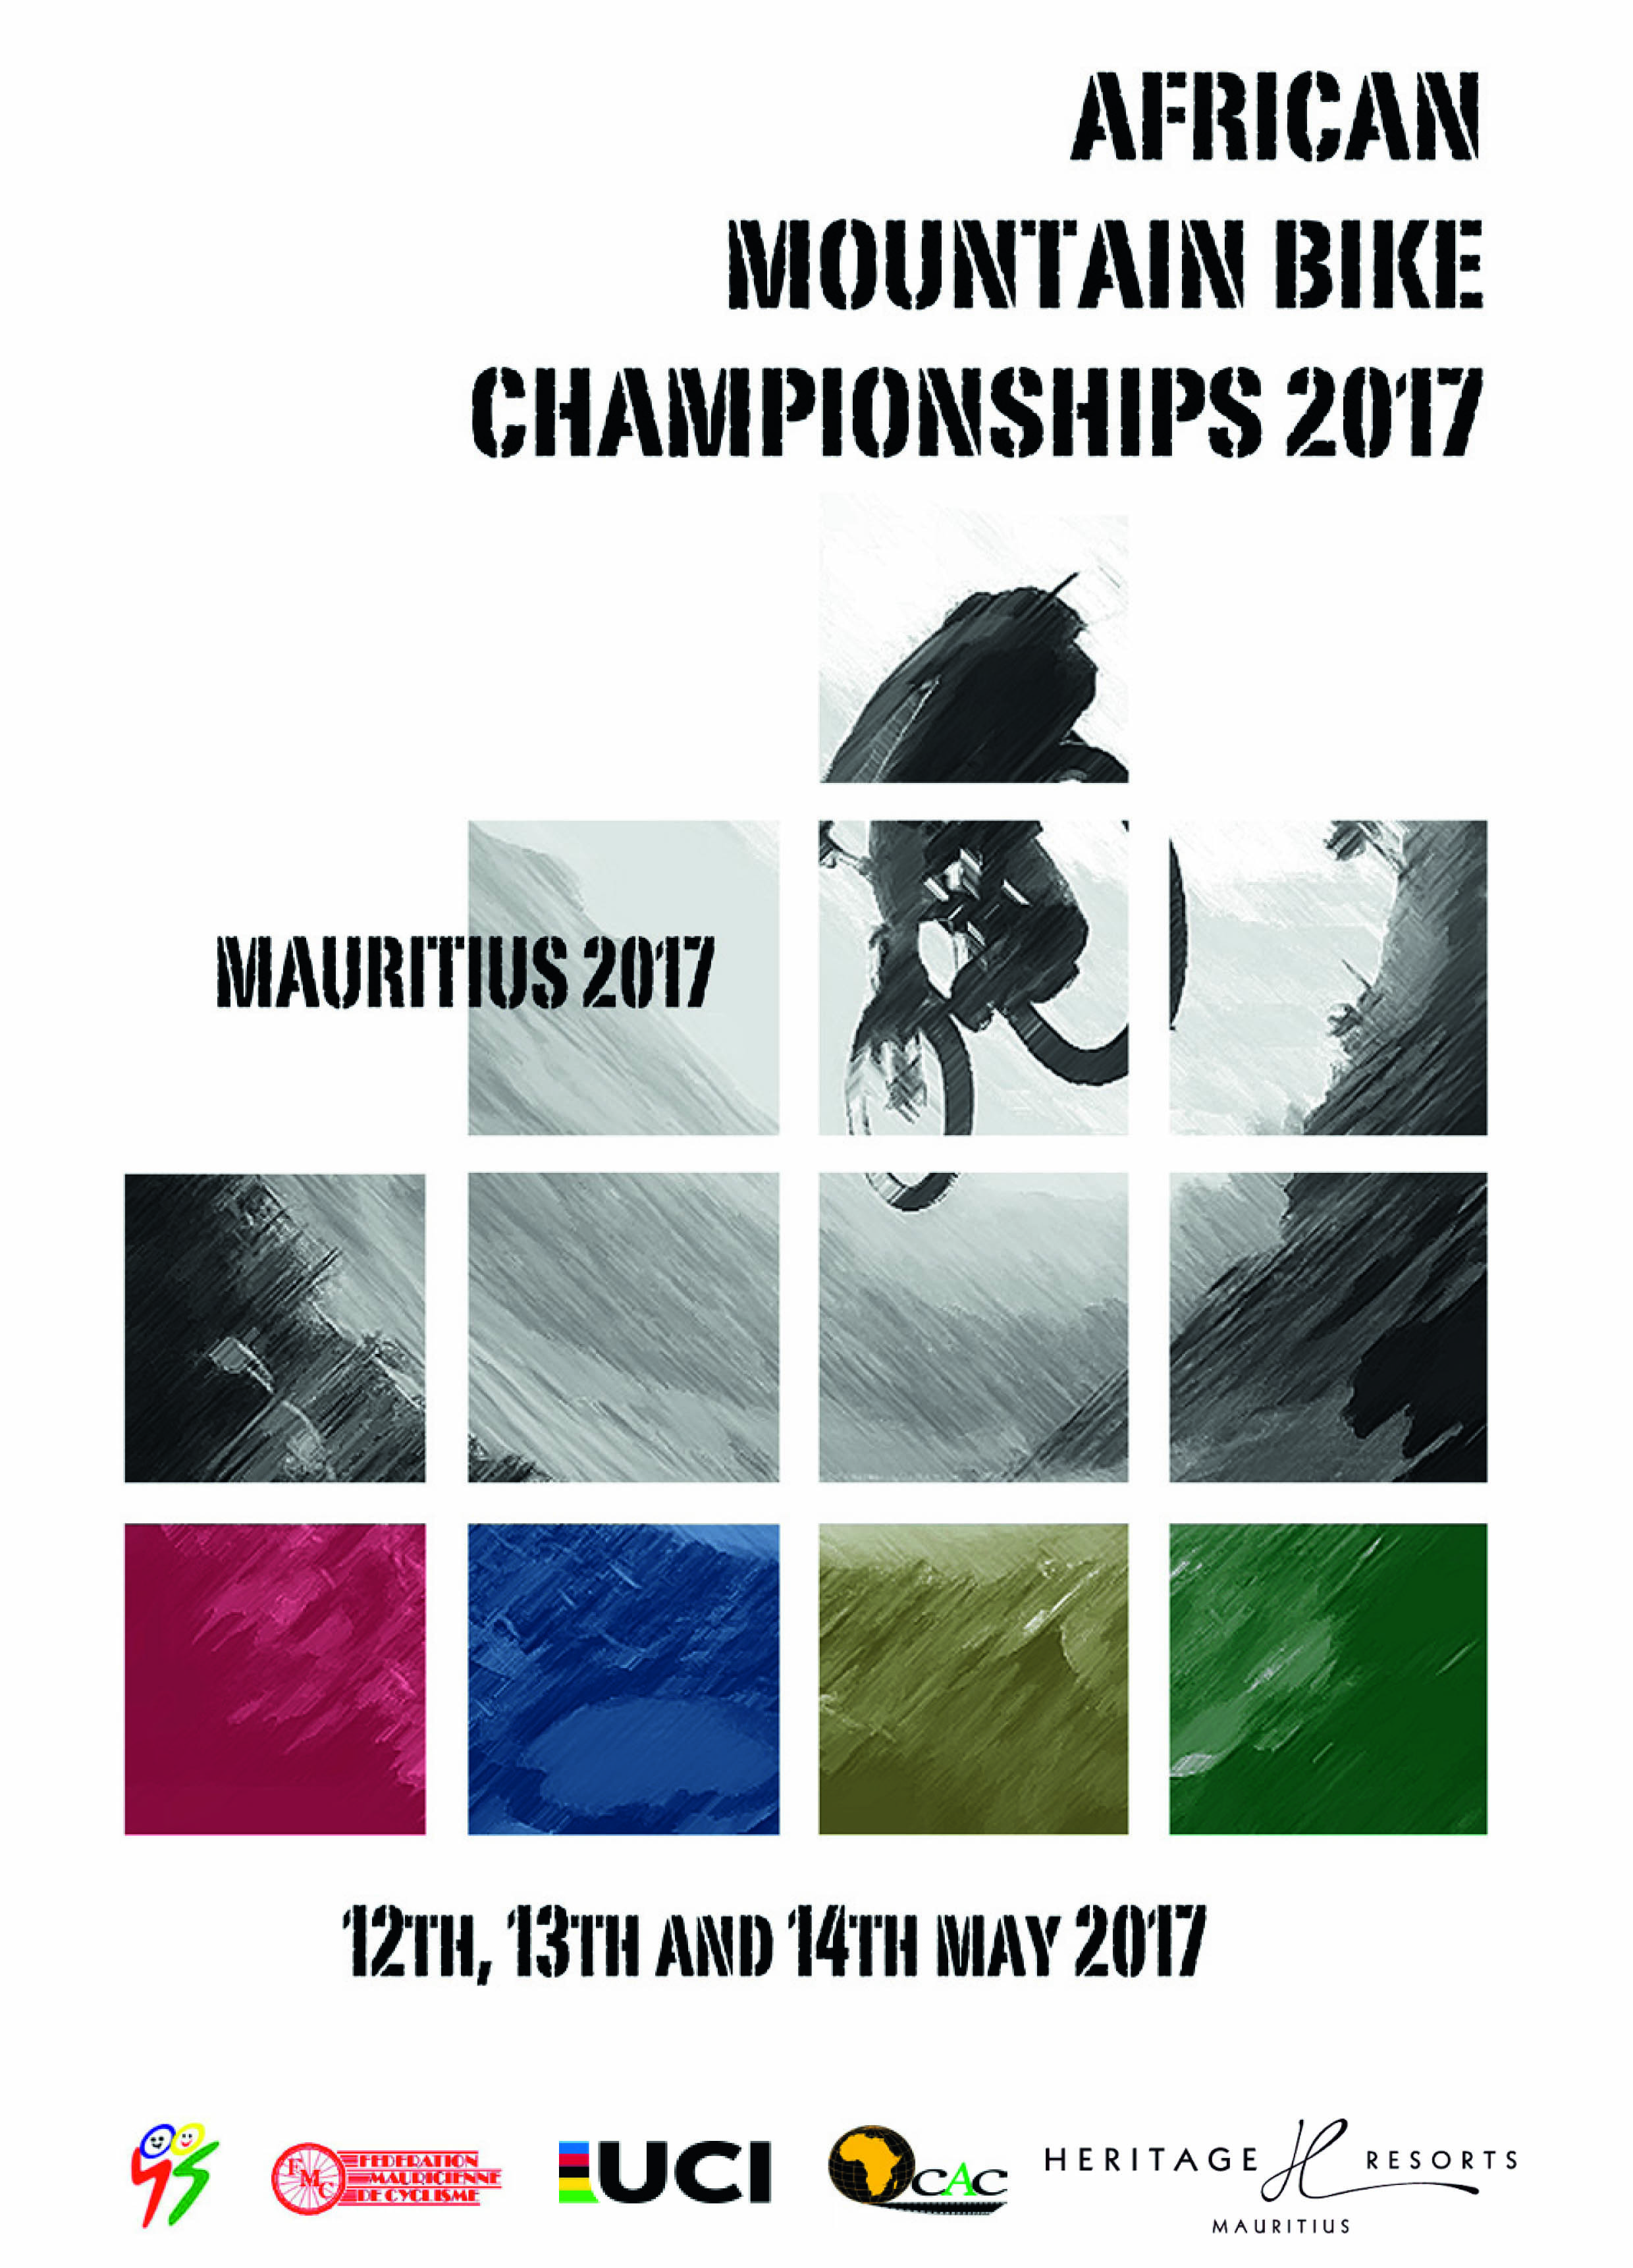 AFRICAN CONTINENTAL  MOUNTAIN BIKE CHAMPIONSHIPS 2017 - Programme-1